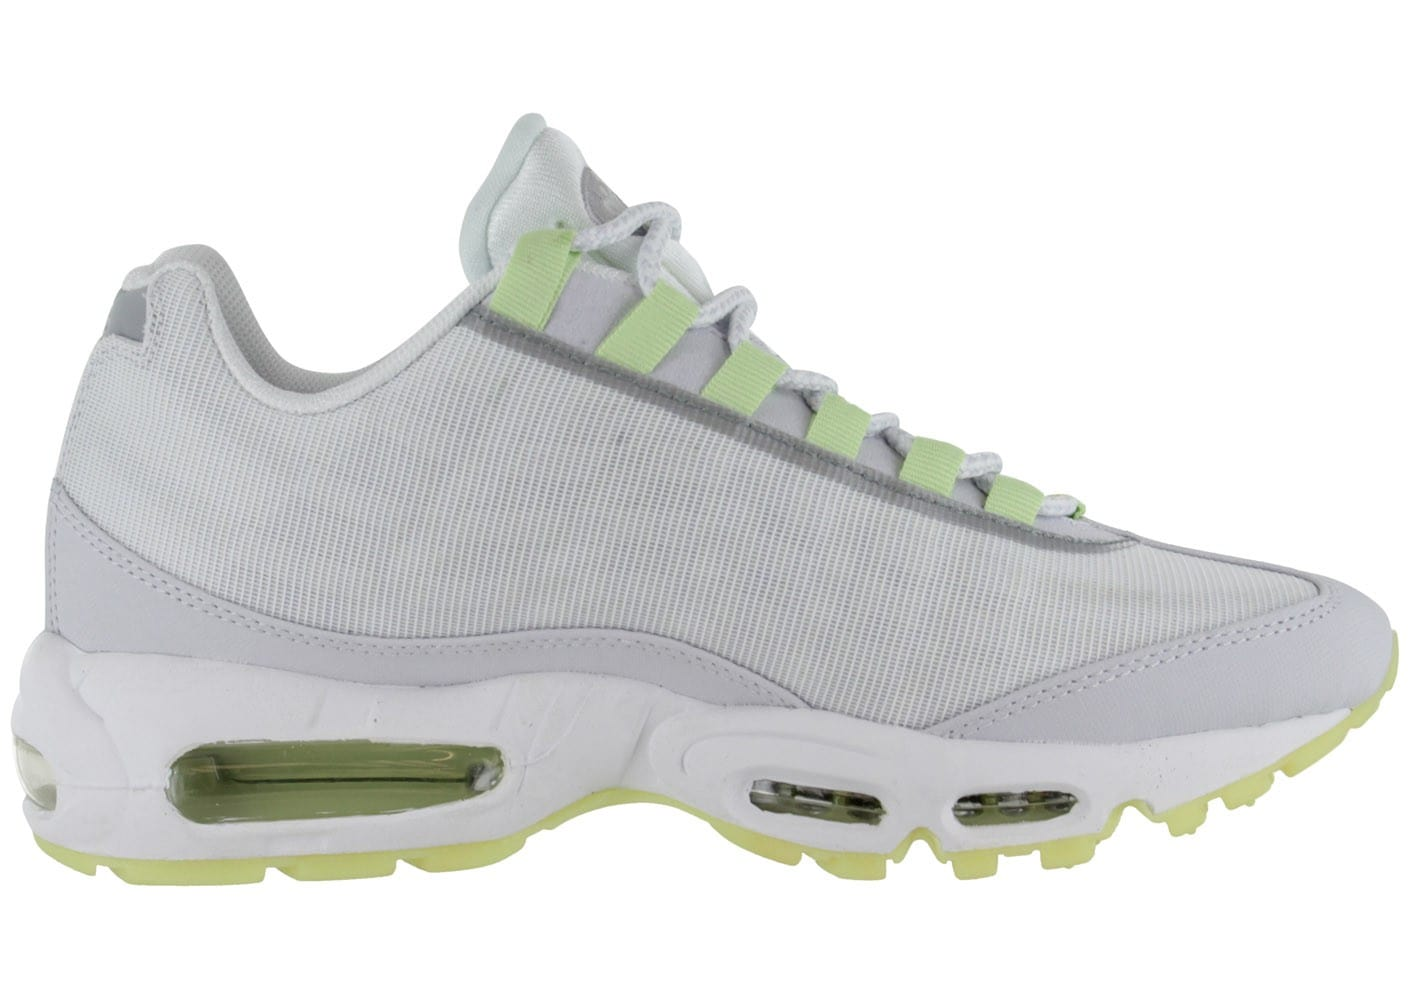 promo code 0af71 dd561 ... chaussures nike air max 95 blanche vue interieure